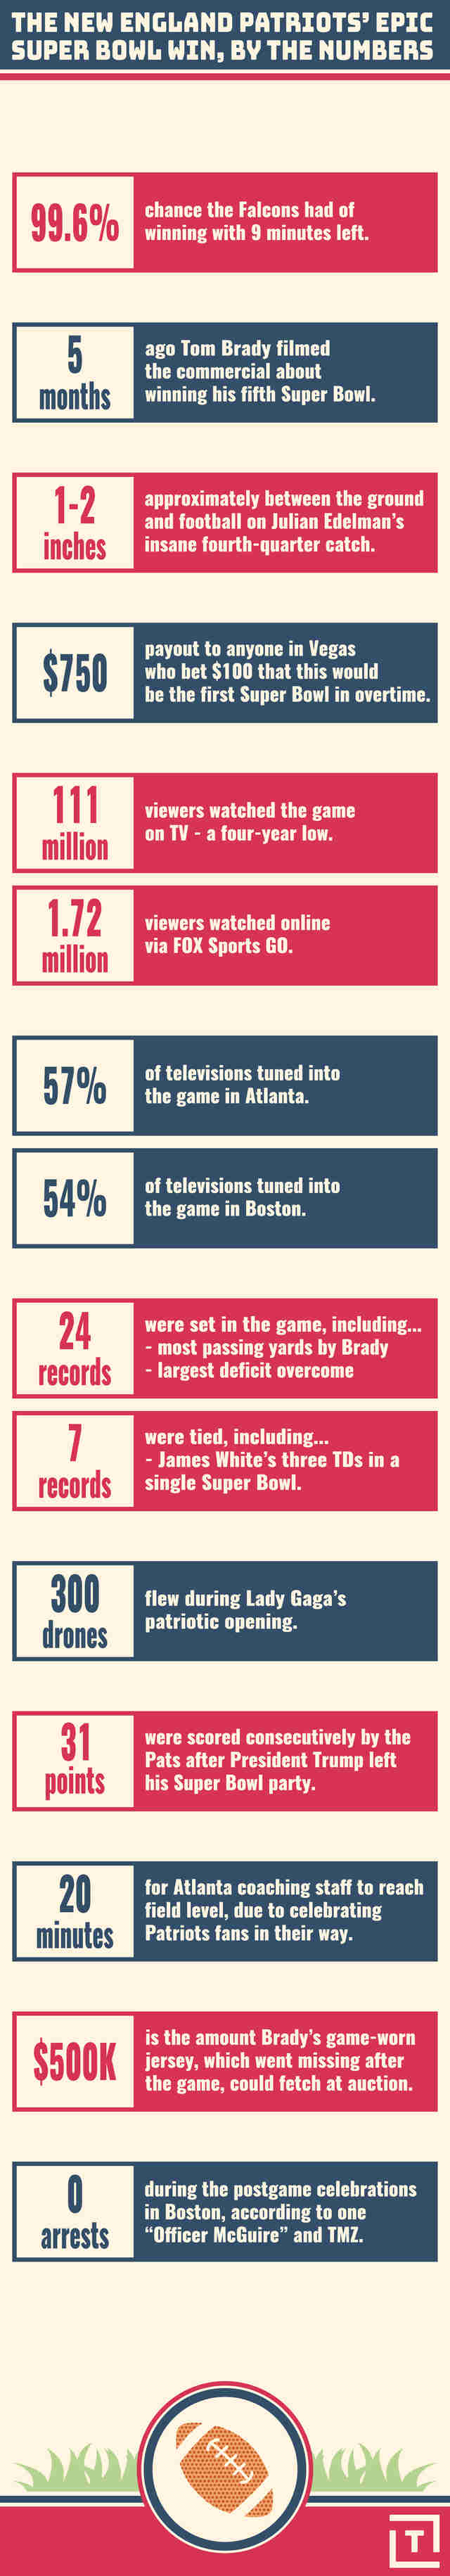 infographic super bowl